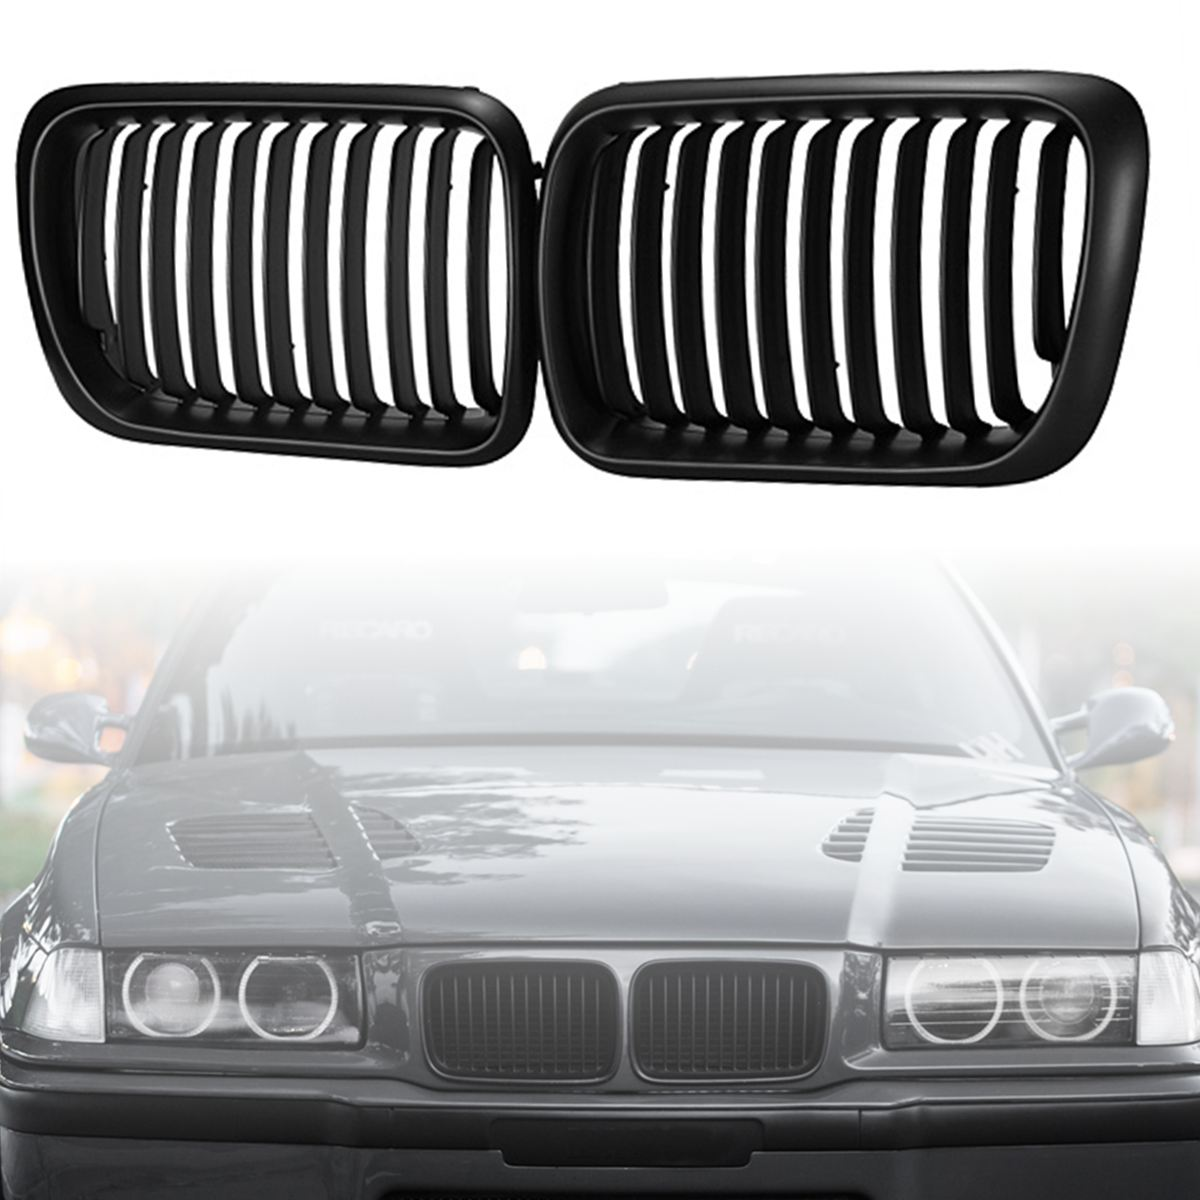 2pcs Factory Style Car Front Kidney Sport Grille Grill for BMW E36 318i 323i 1997 1998 1999